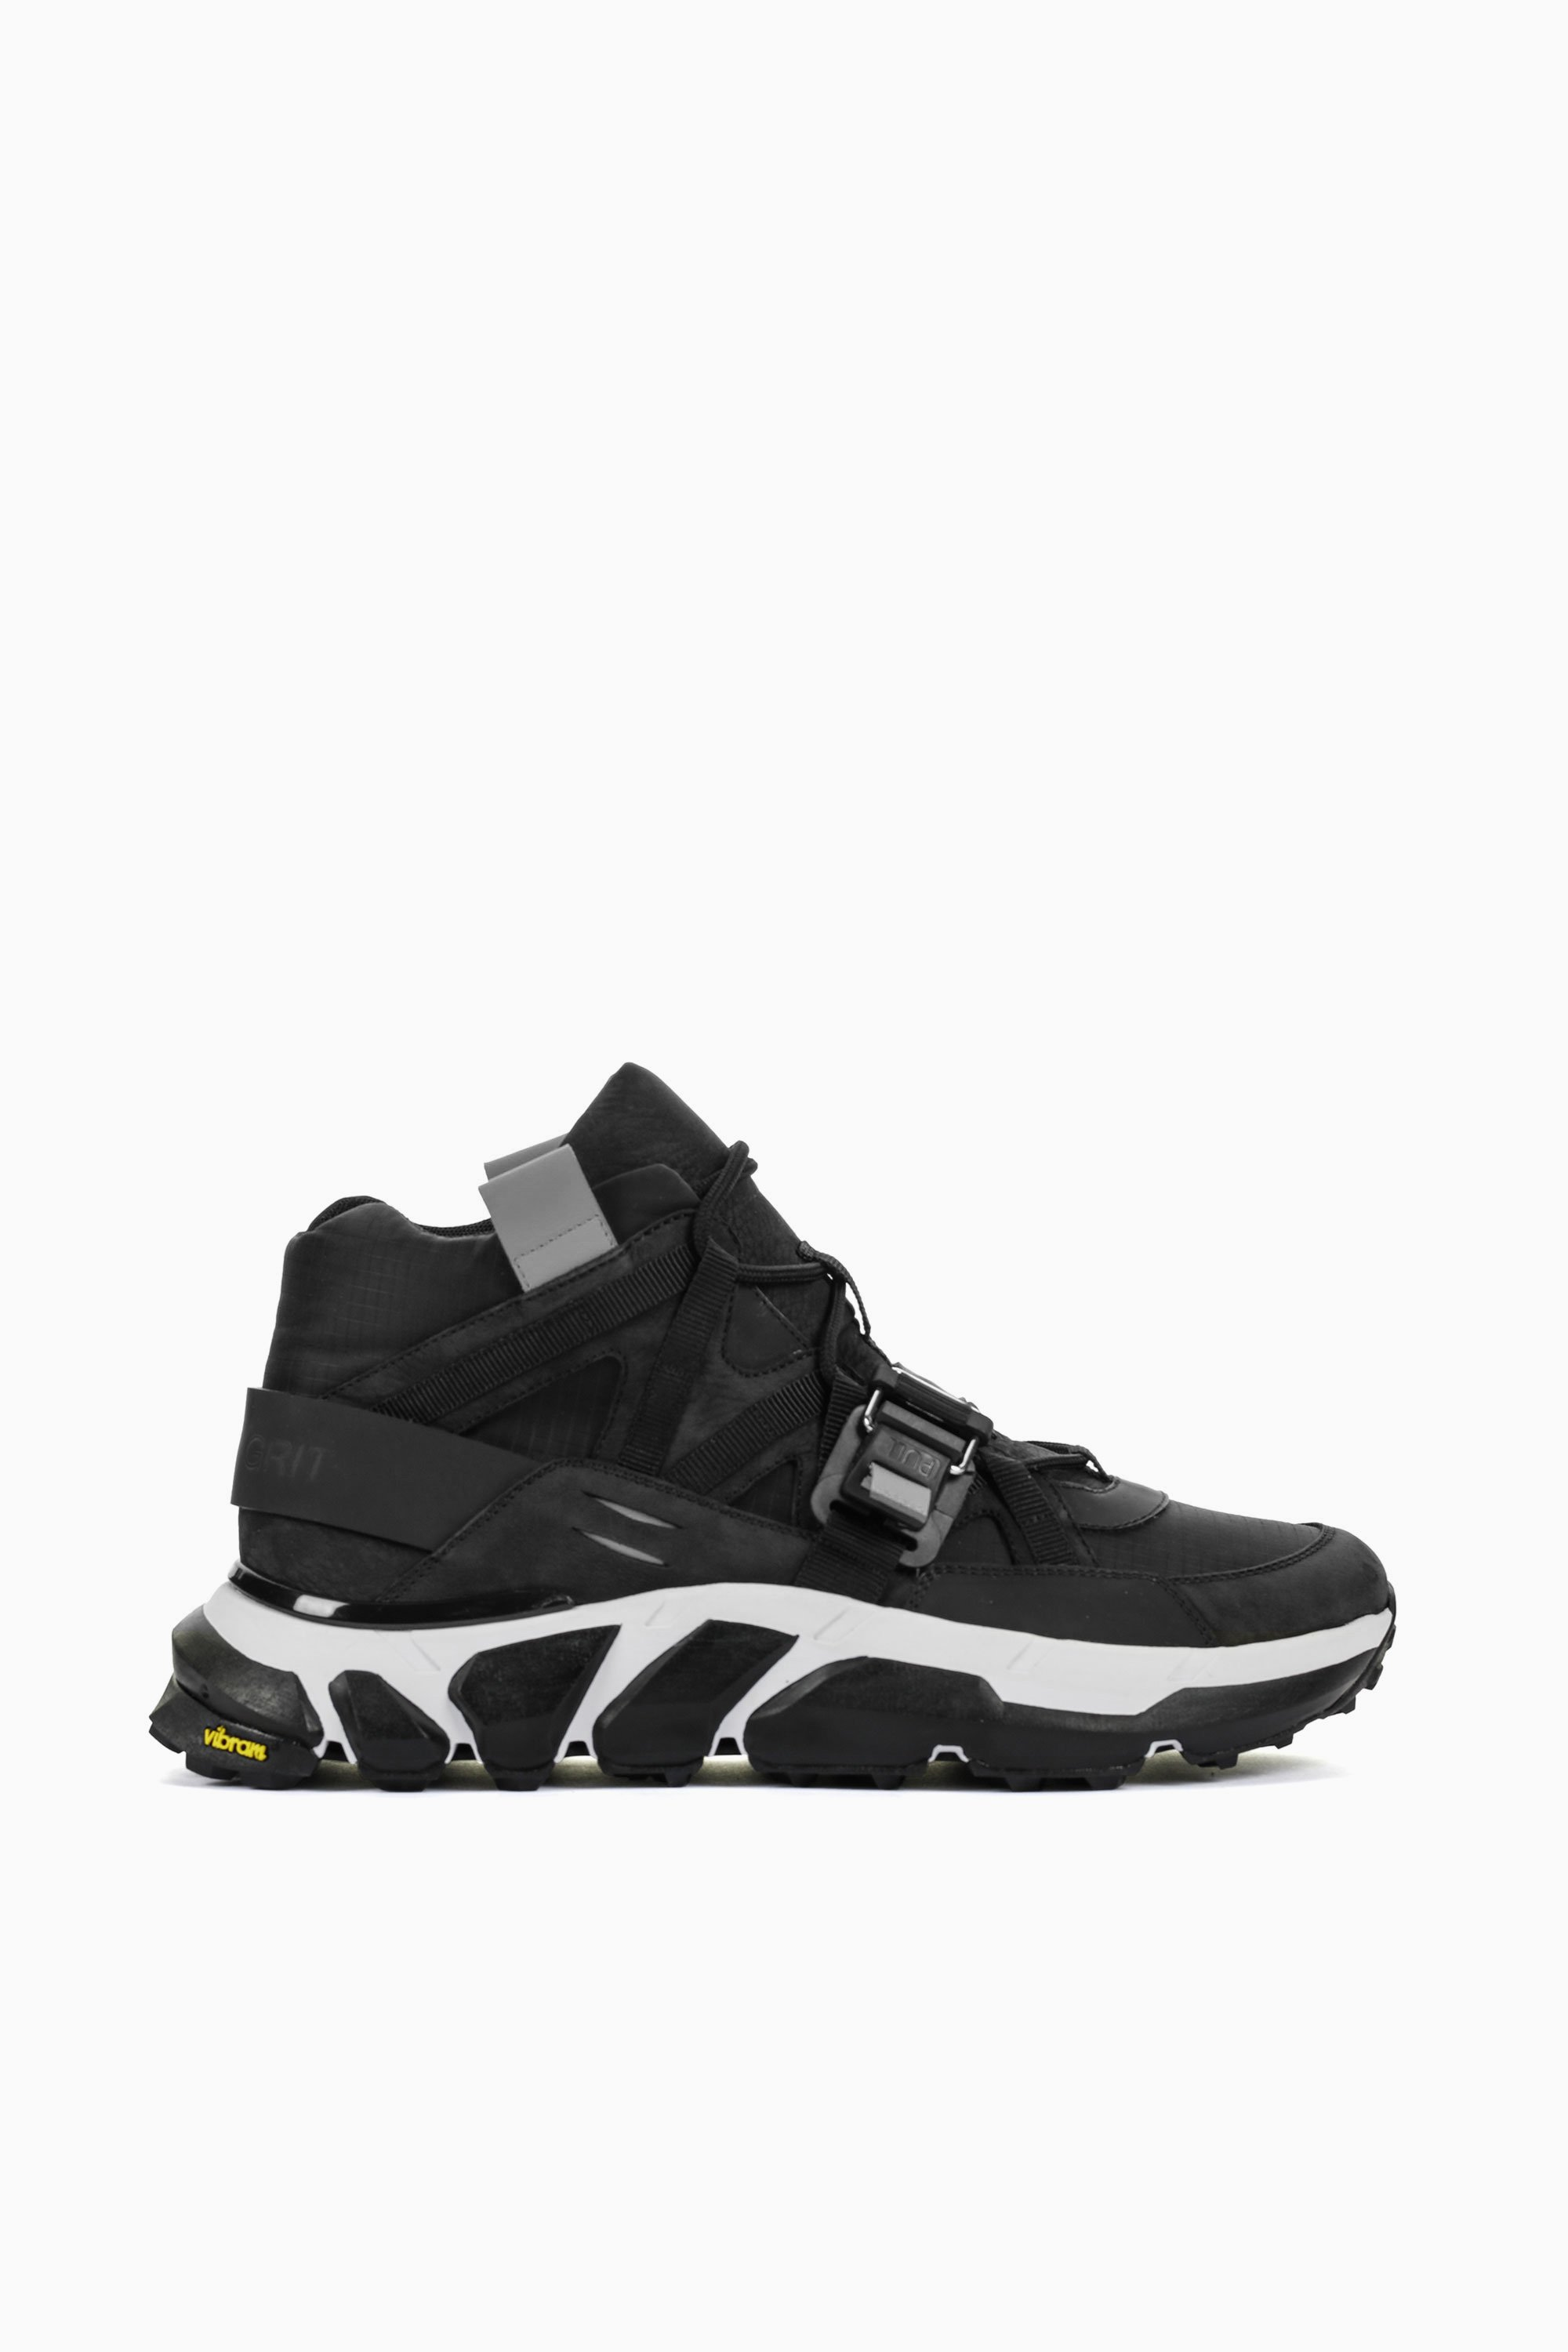 Soho Grit Leathers THE ARCHER HIGH BLACK